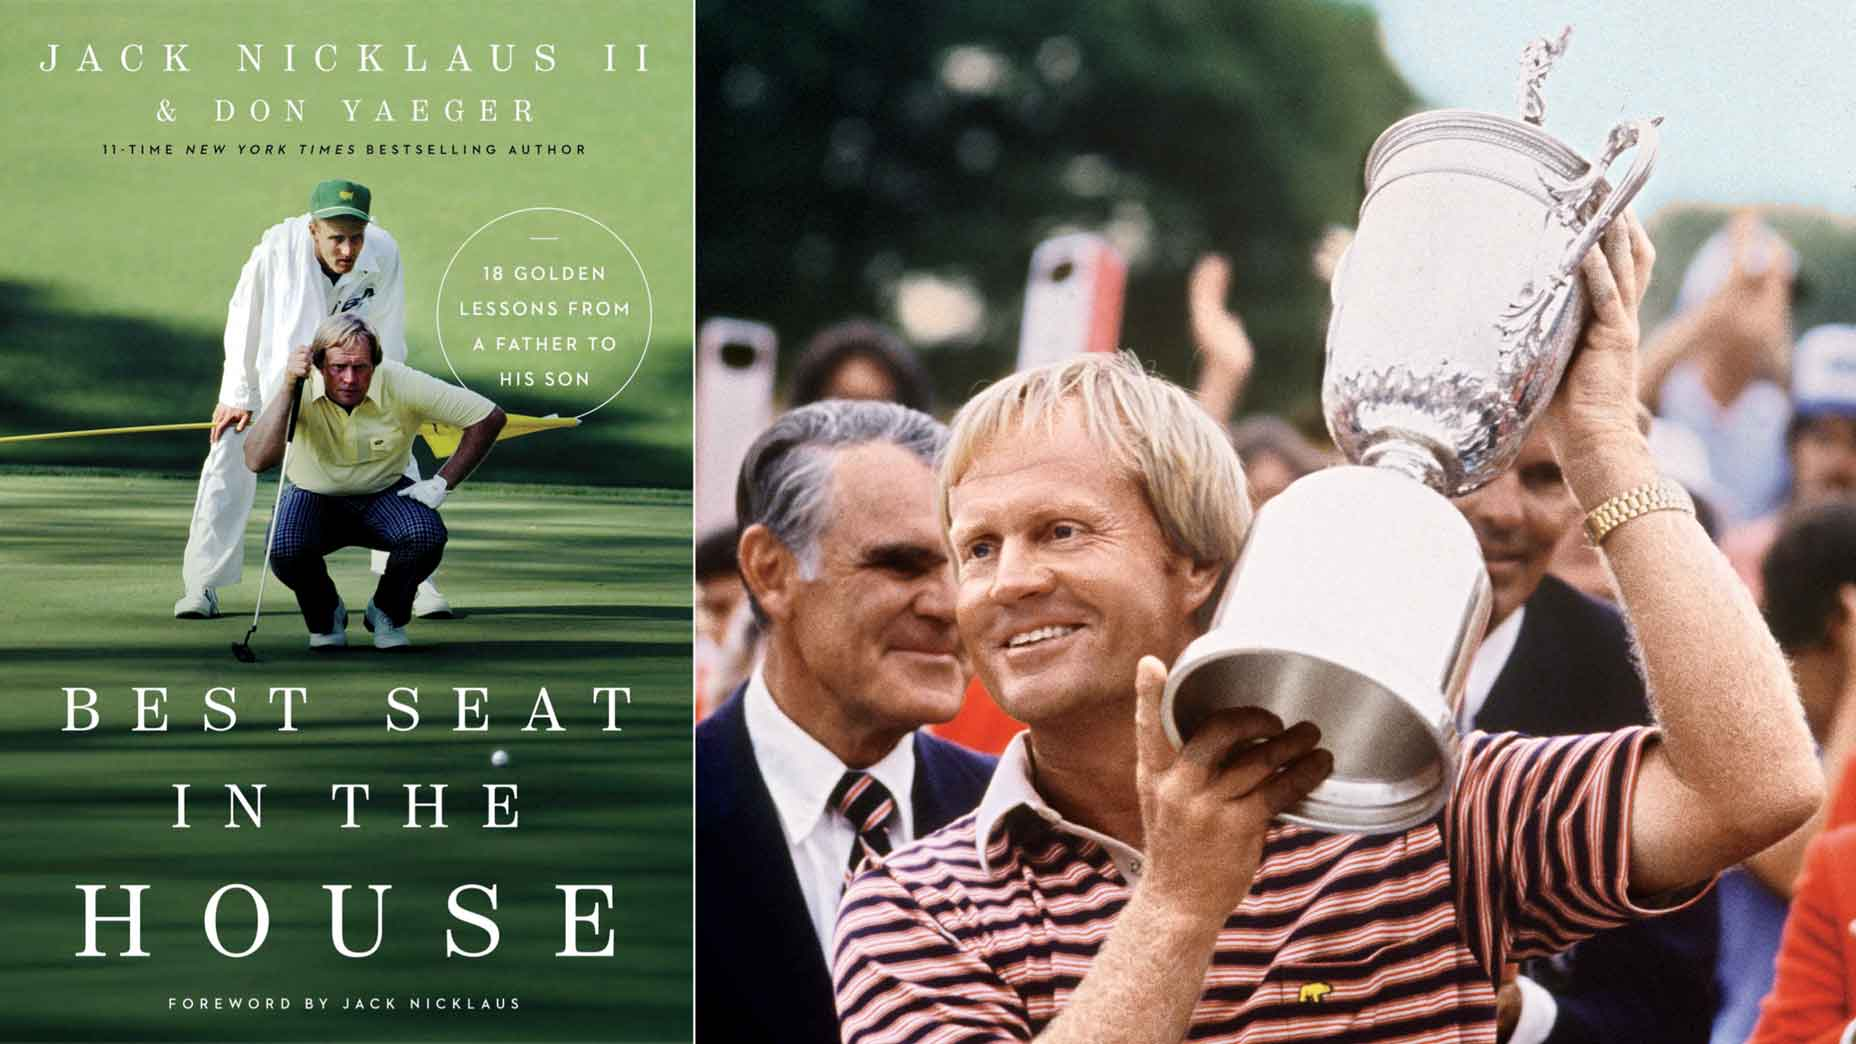 Jack Nicklaus book cover and photo